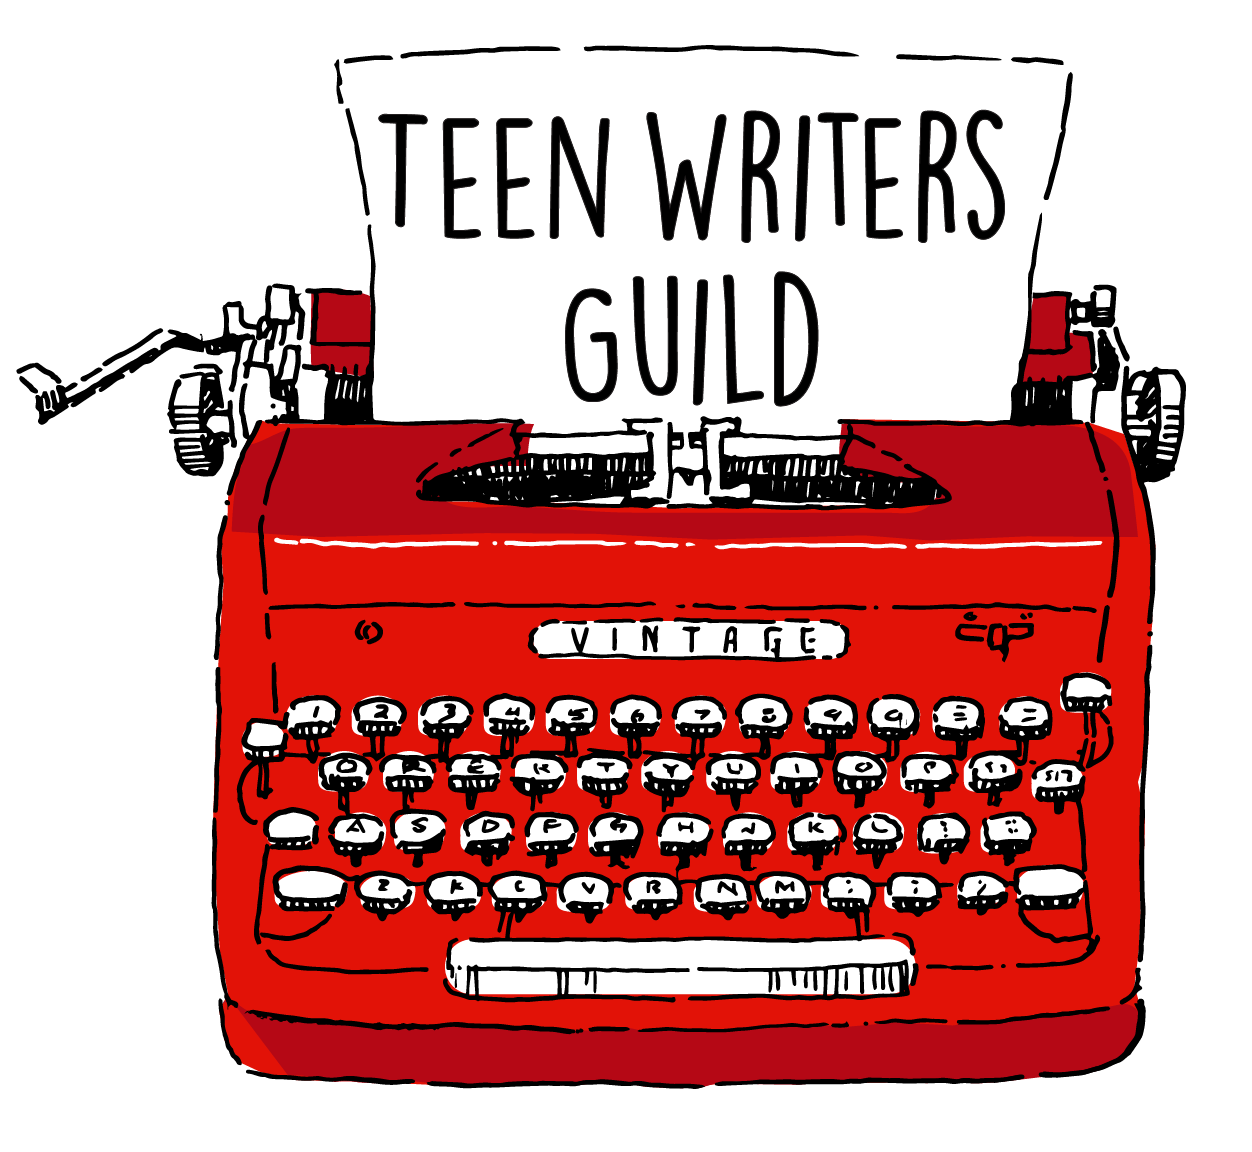 Teen Writers Guild